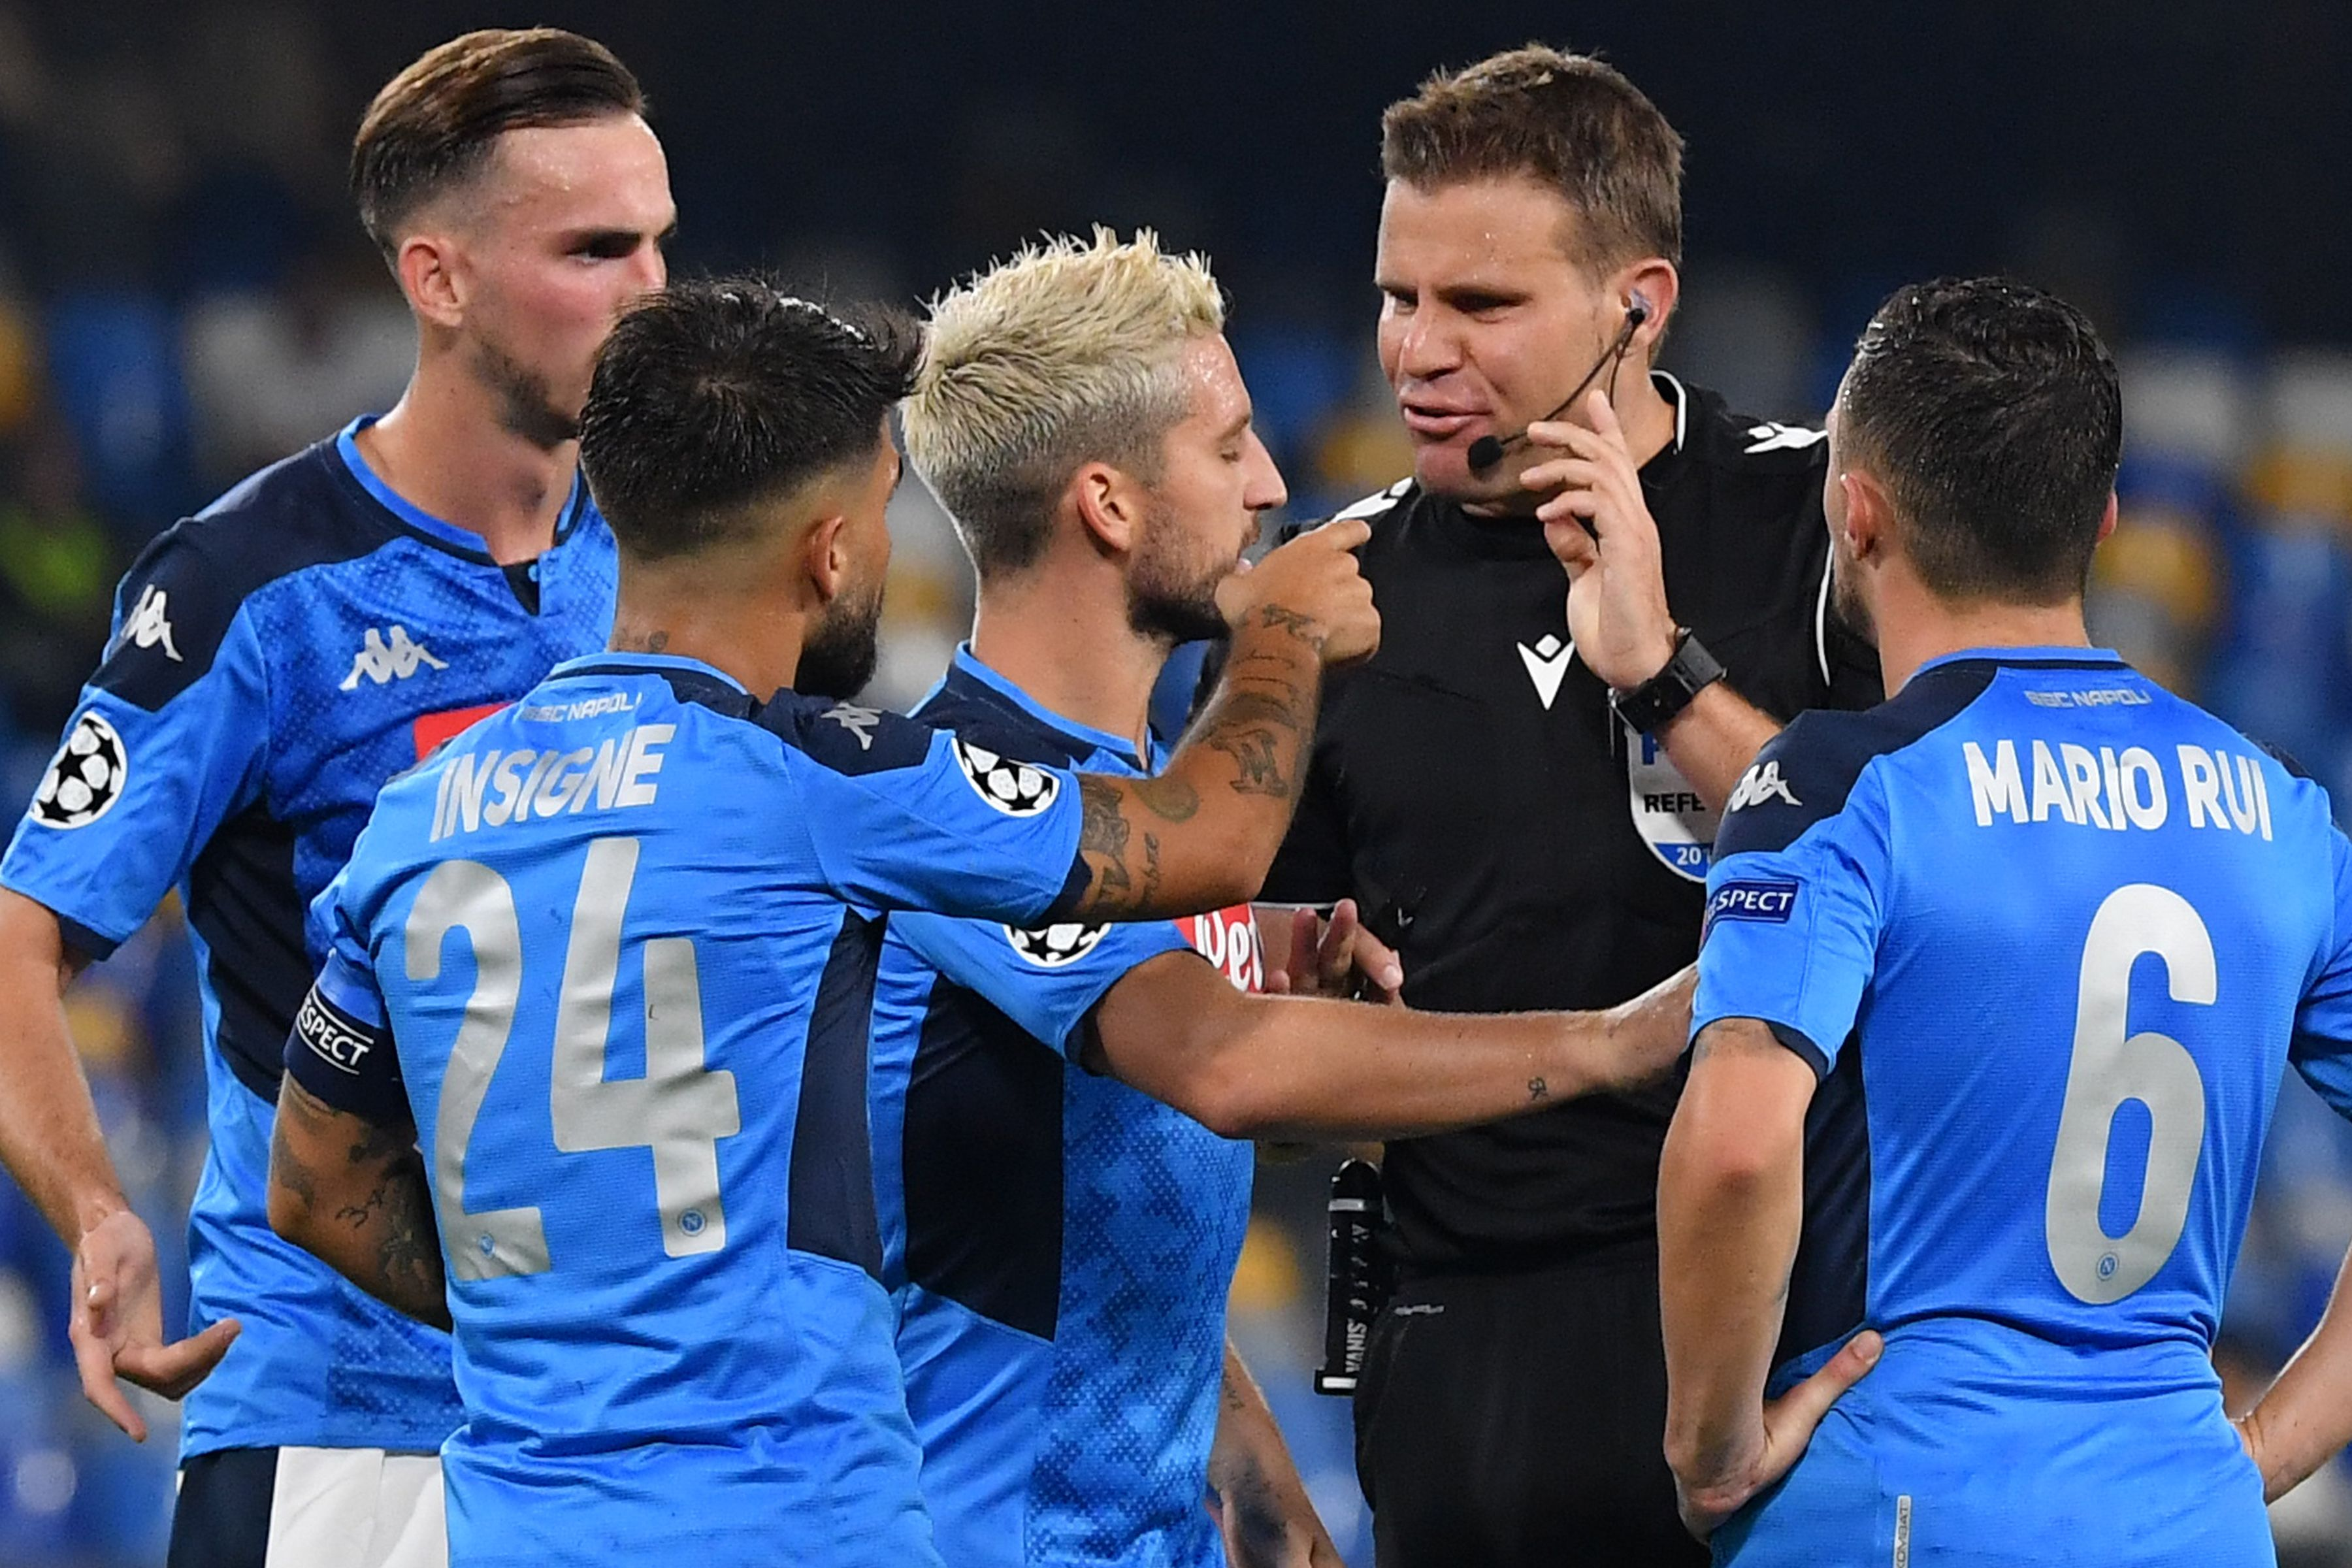 Napoli players remonstrate with the referee